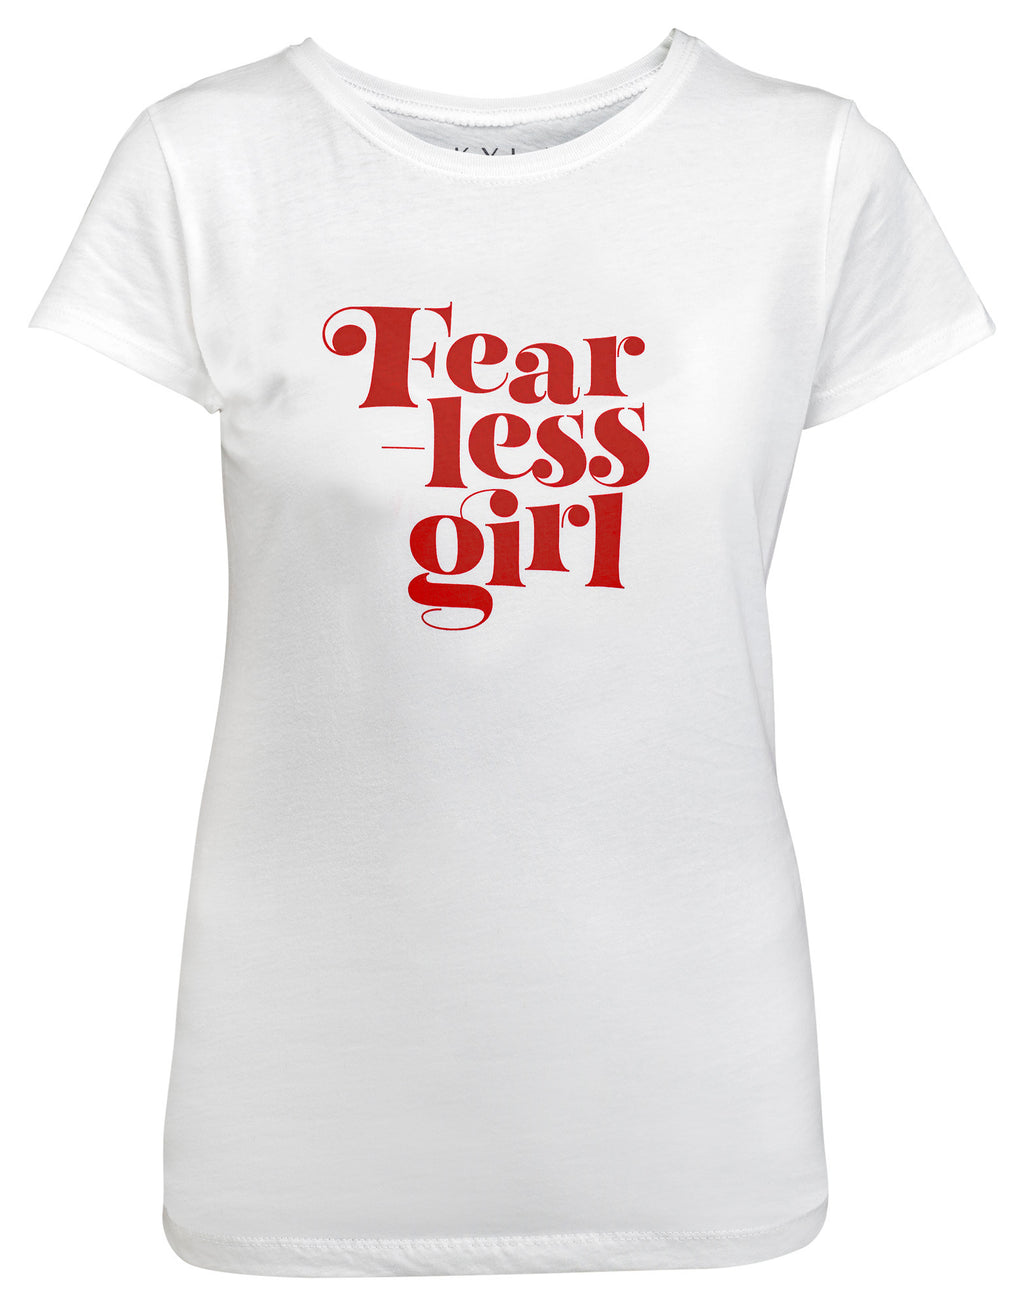 Fearless Girl Youth Graphic Tee